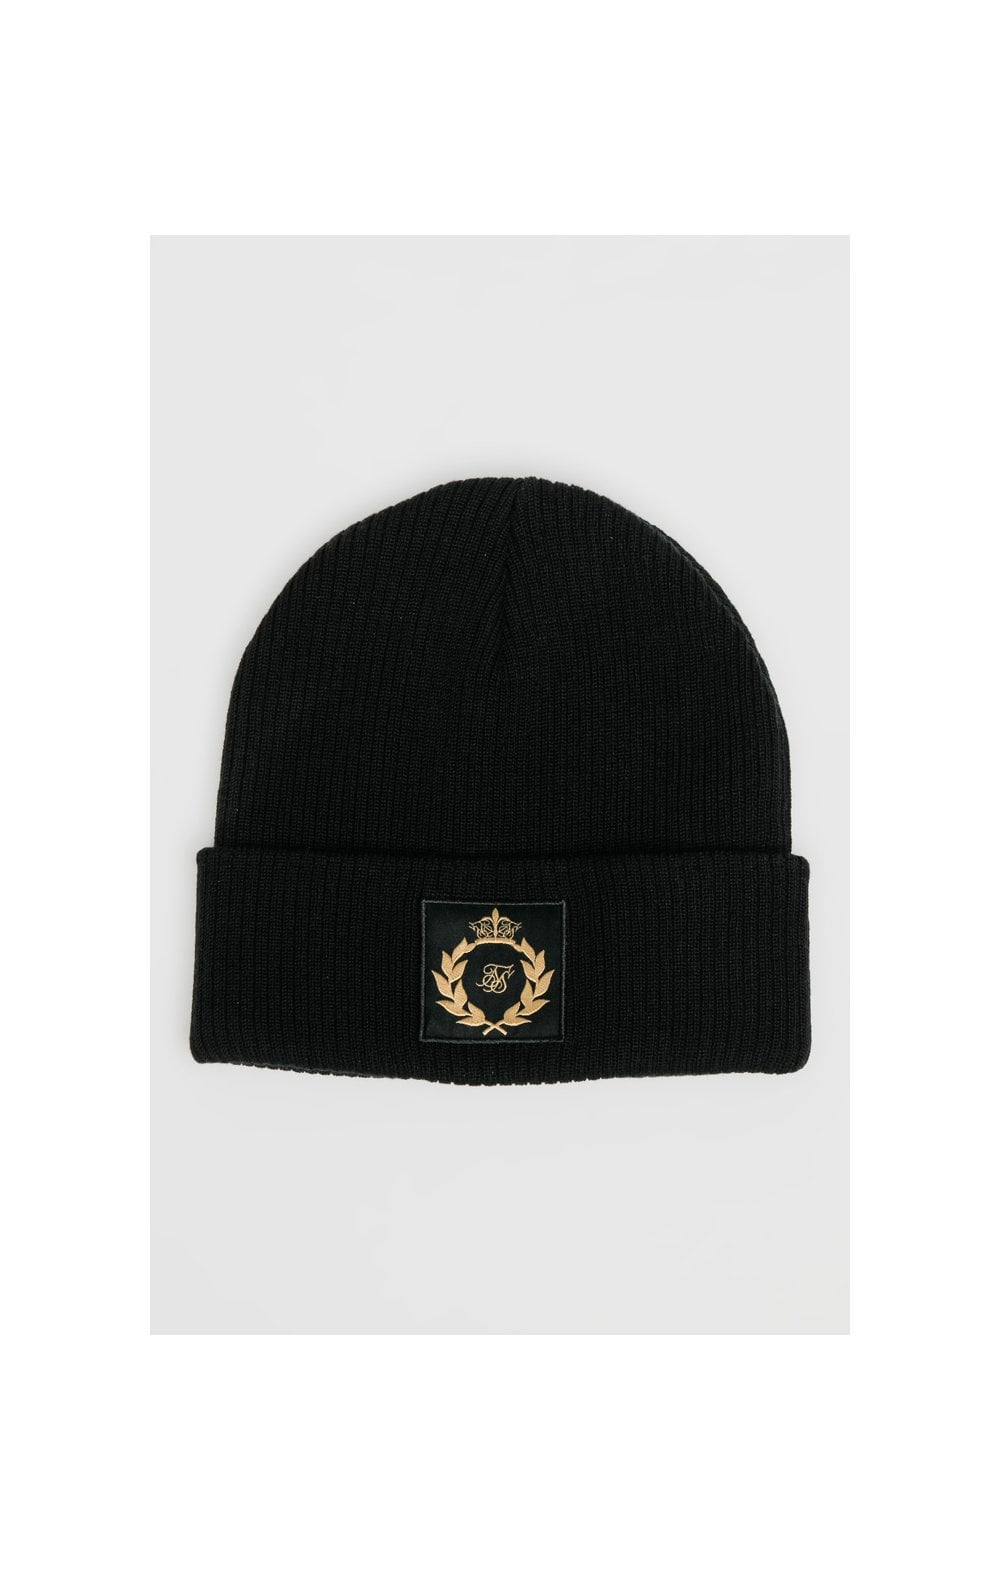 SikSilk x Dani Alves Beanie – Black